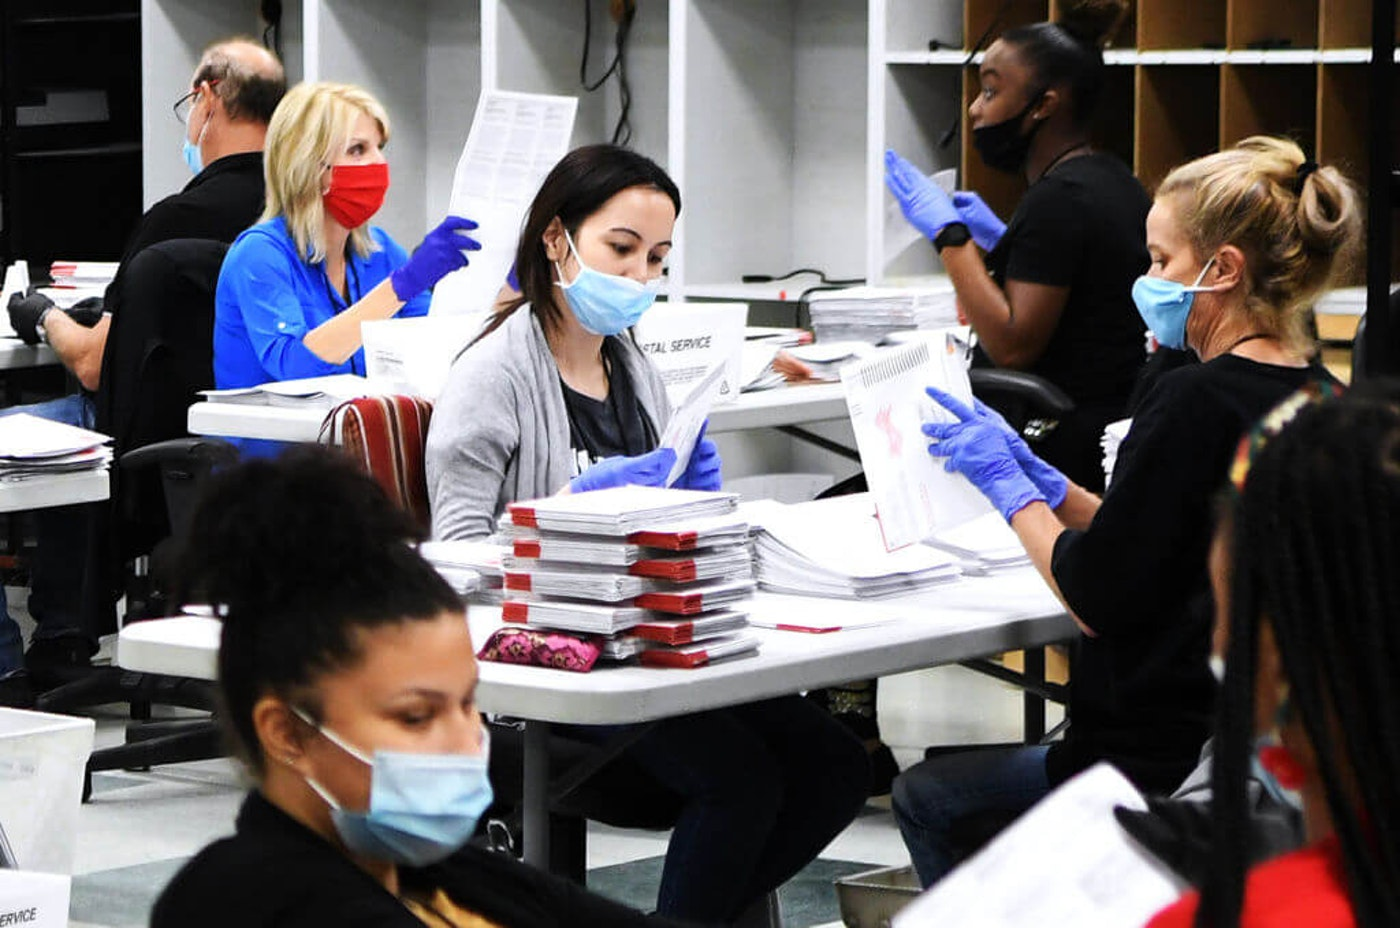 Election office workers wear face masks and gloves as they process mail-in ballots in the ballot duplicating room at the Orange County Supervisor of Elections office on October 26, 2020 in Orlando, Florida. With nine days until the November 3 election, more people already have cast ballots in this years presidential election than voted early or absentee in the 2016 race.  (Photo by Paul Hennessy/NurPhoto via Getty Images)